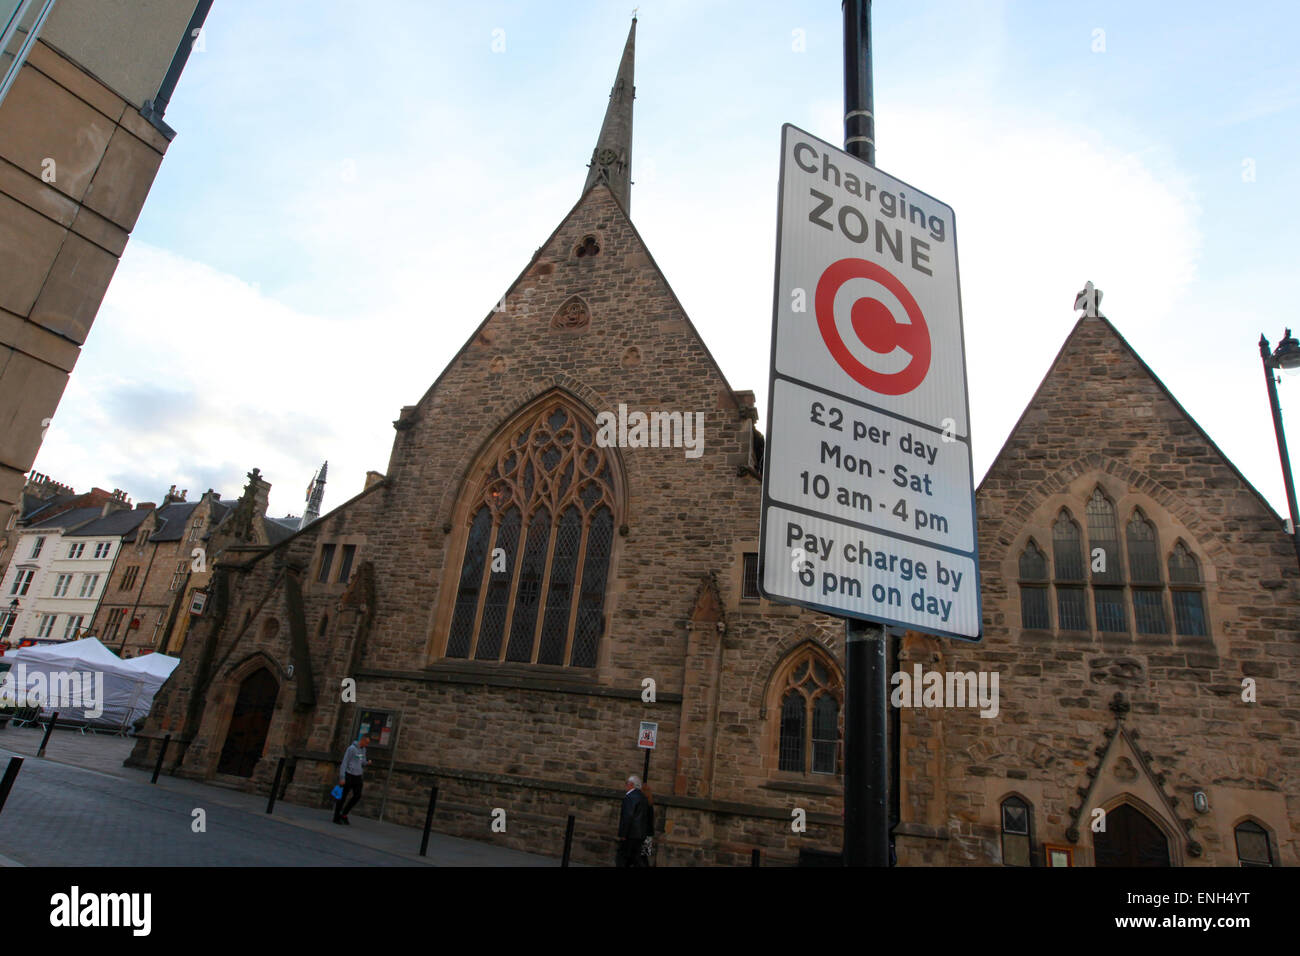 Charging zone sign in Durham city centre - Stock Image